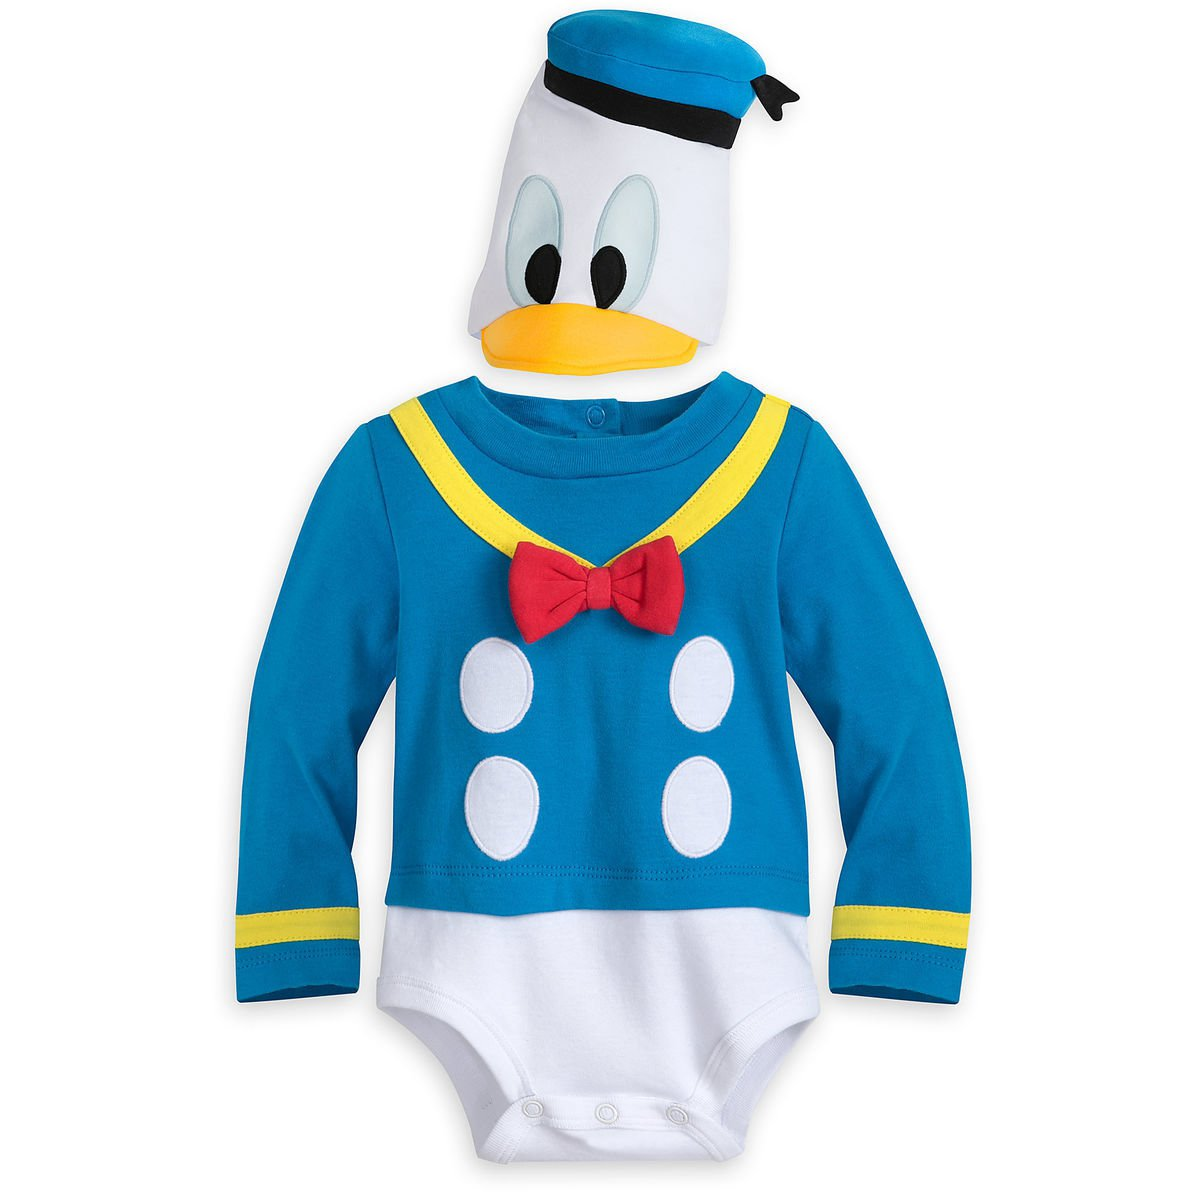 Disney Store Donald Duck Baby Costume Bodysuit Hat 9-12 Months 2018 New